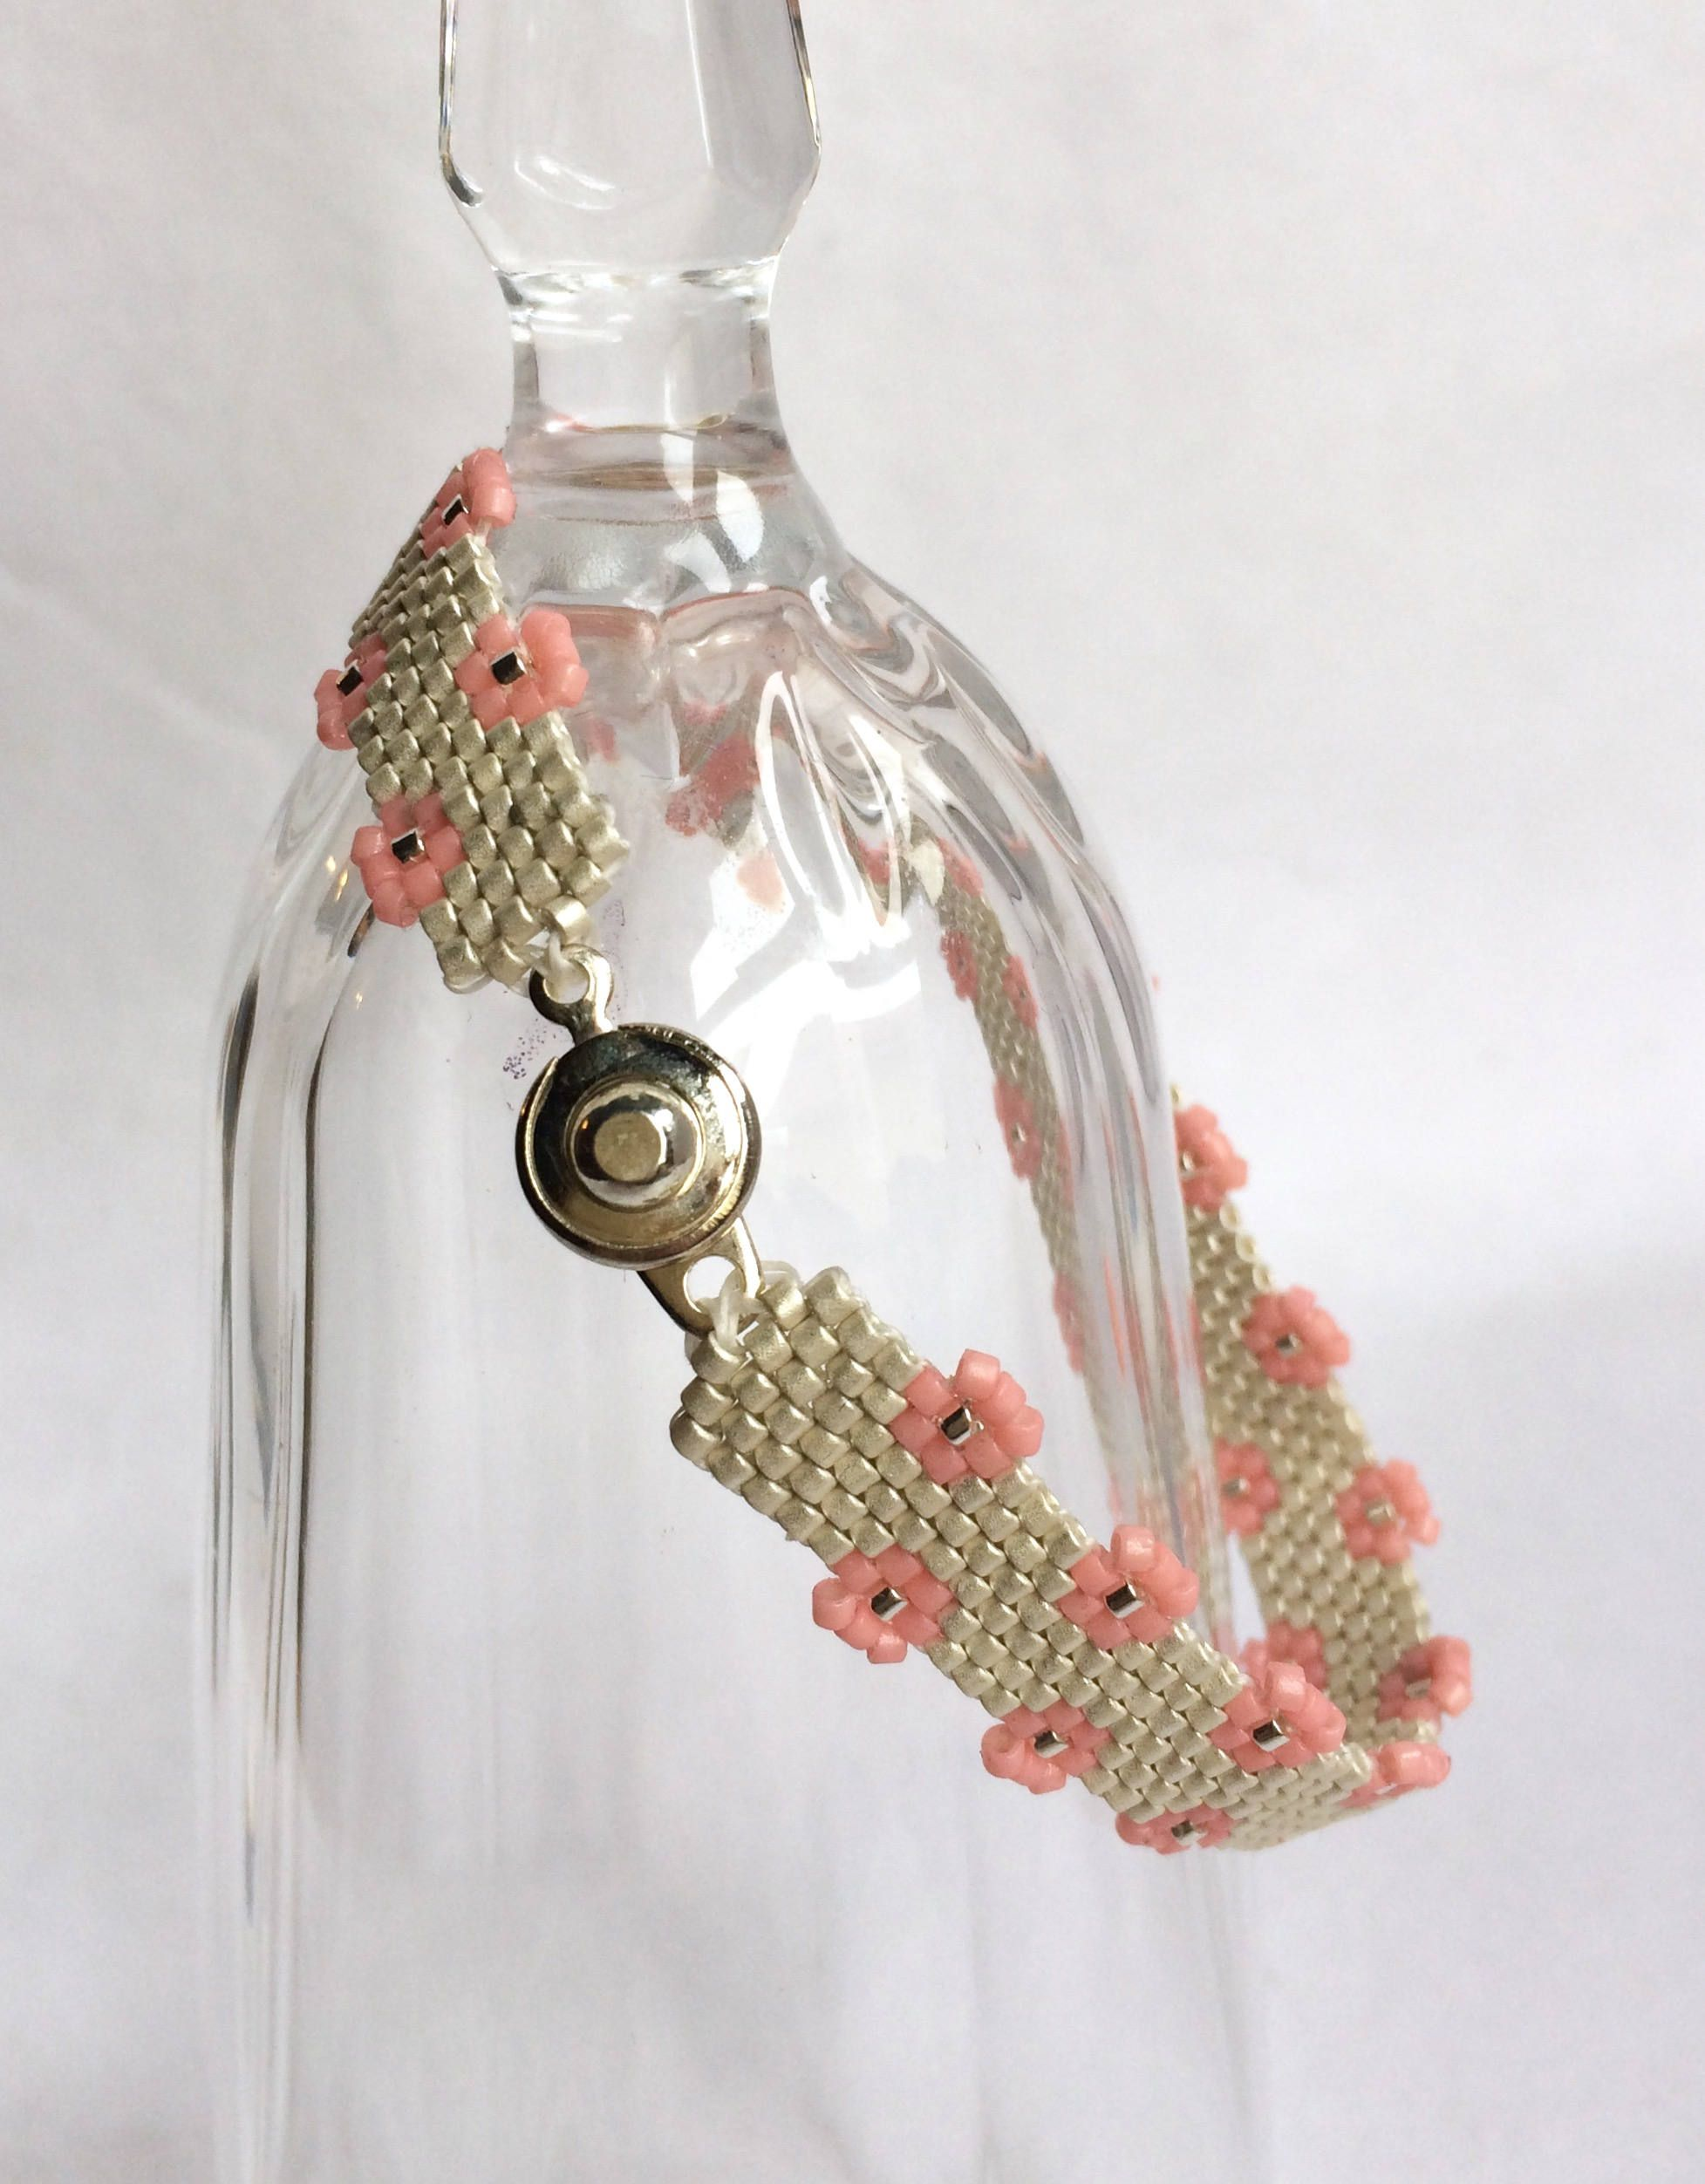 This handcrafted, needle beaded cuff bracelet is done in Peyote stitch in silver with a pink flower edging. It is 7 inches long and 1/4 inch wide with a silver plated snap clasp. The bracelet is easy to wear, easy to put on and take off, and is a delightful addition to your summer wardrobe. The silver band is made with sterling silver plated glass beads which gives it a bright silver sheen; and the pink flowers add sweetness to the elegance of the cuff. It is a perfect summer addition to...